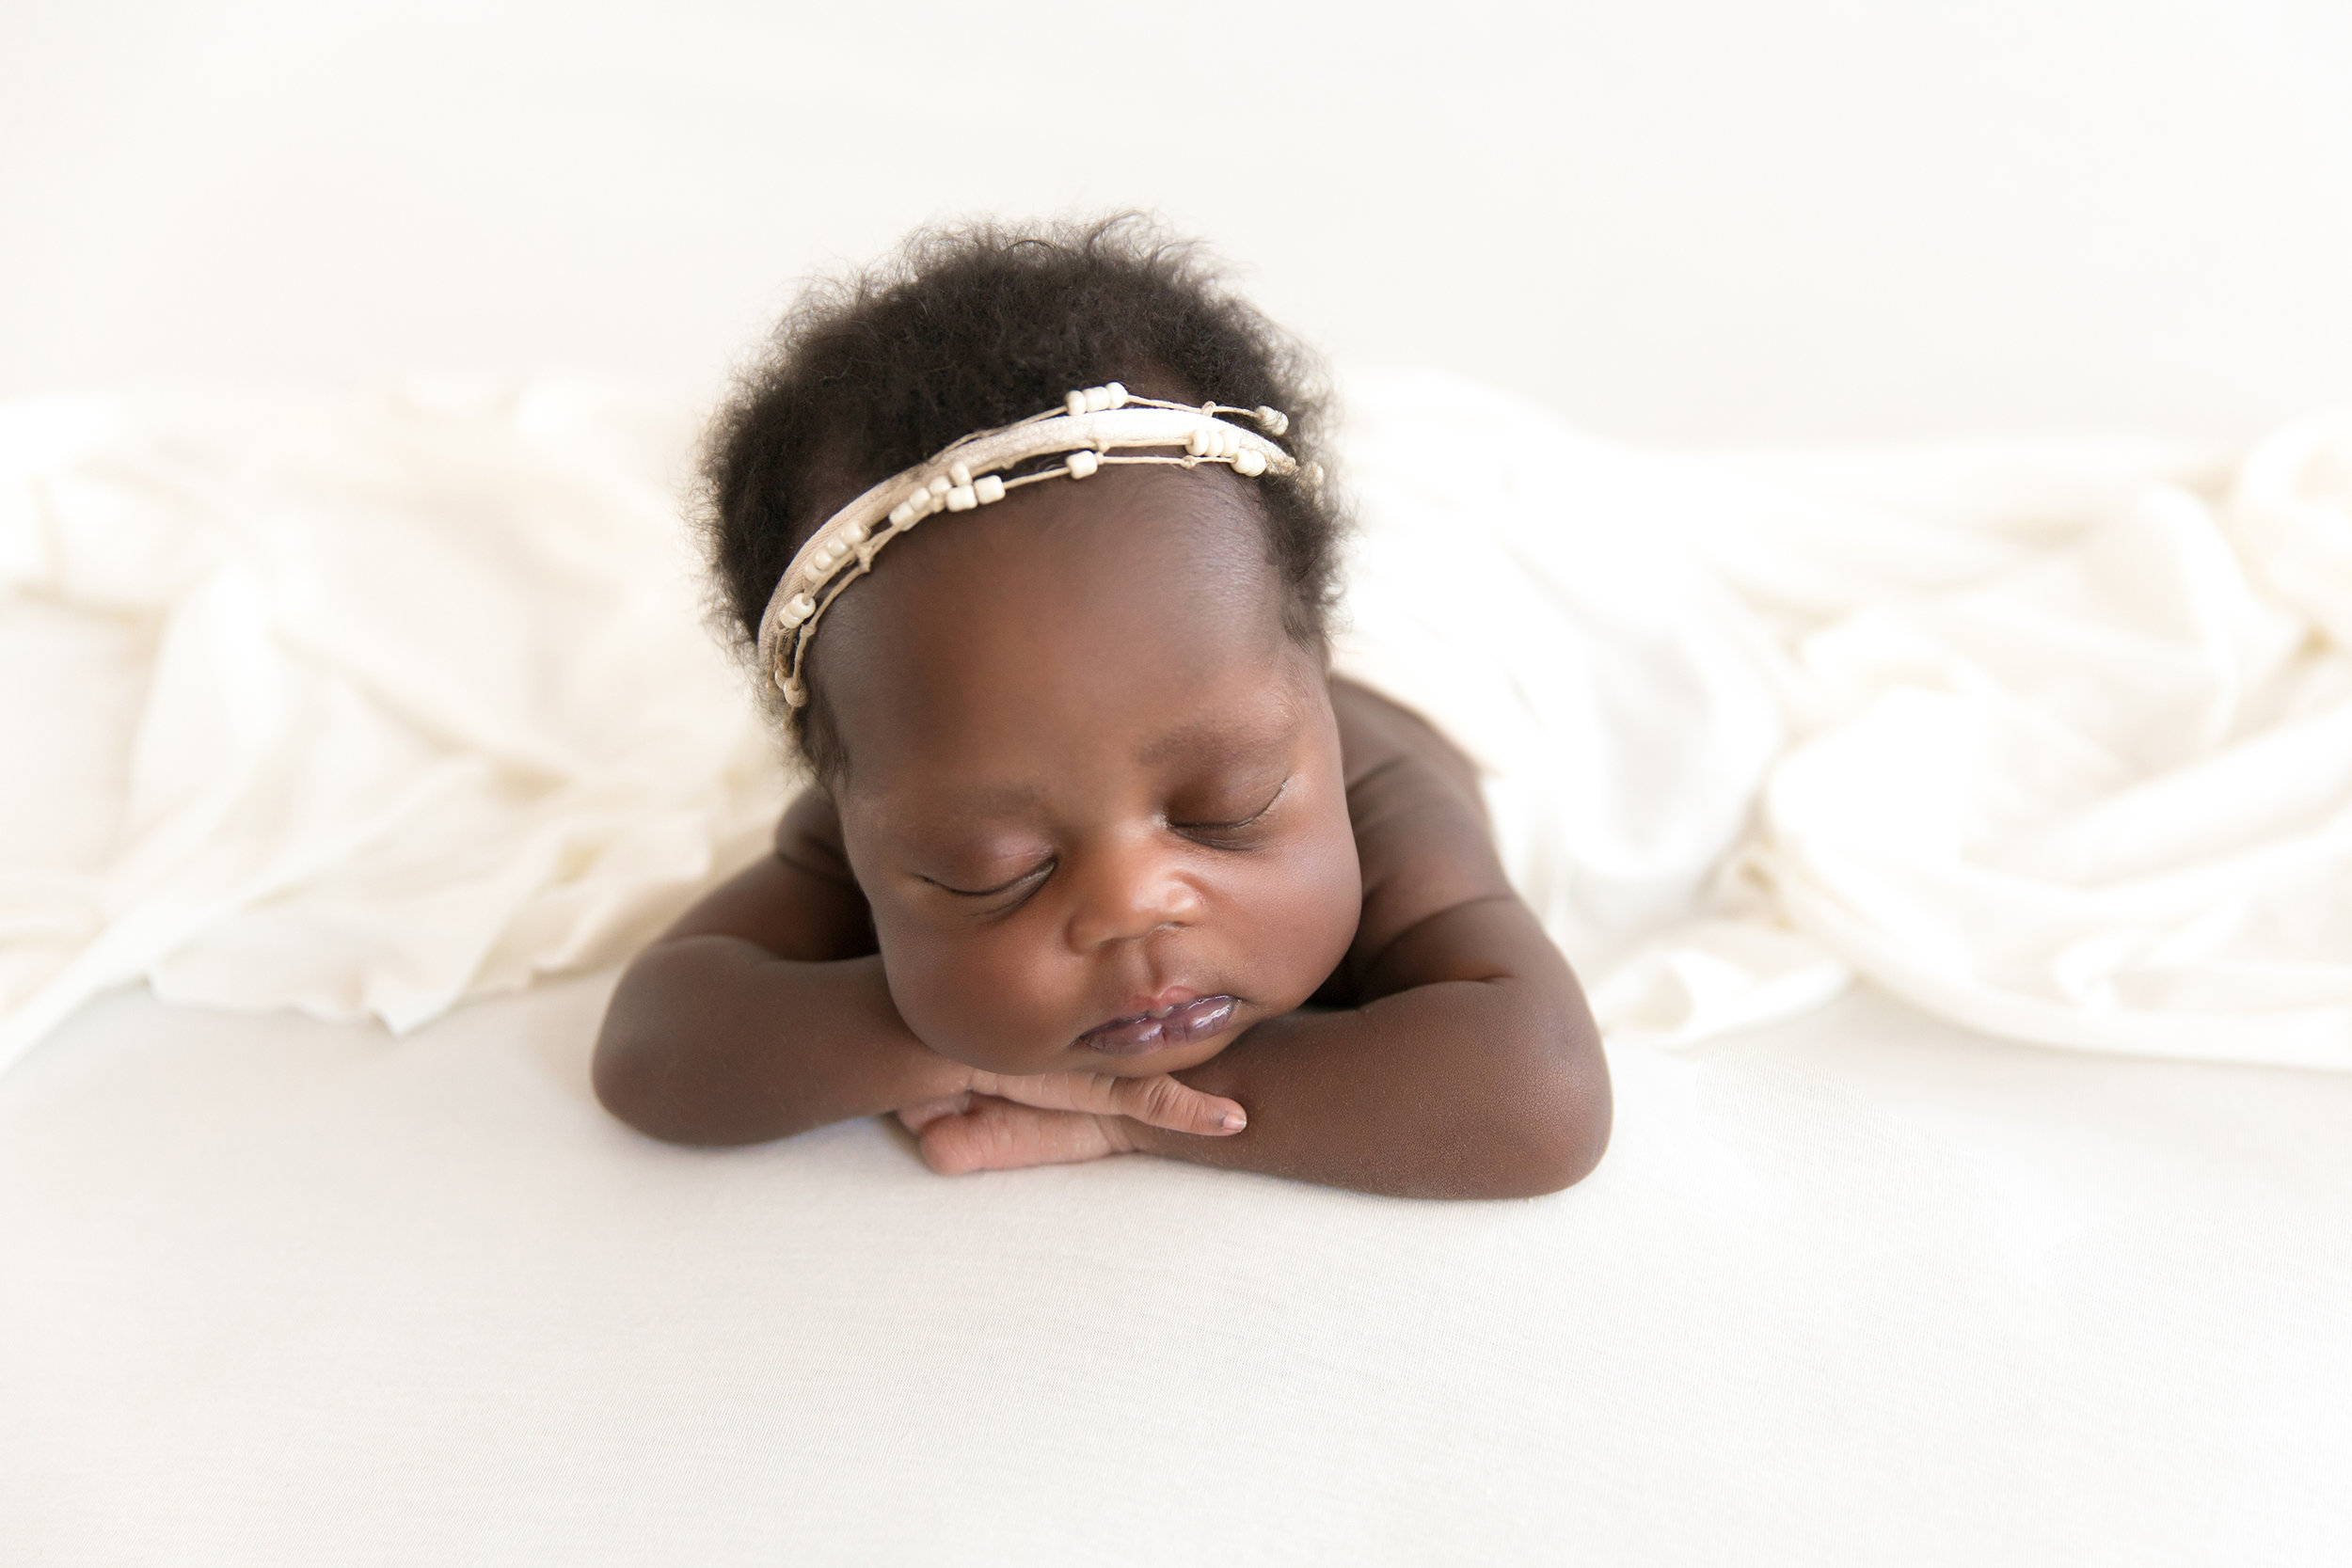 Chin on hands pose. Newborn Photoshoot on a beanbag. Beautiful newborn baby girl is lying on a beanbag. White wrap and white backdrop and white headbands. Newborn Photoshoot idea. Calgary Newbon photographer - Milashka Photography